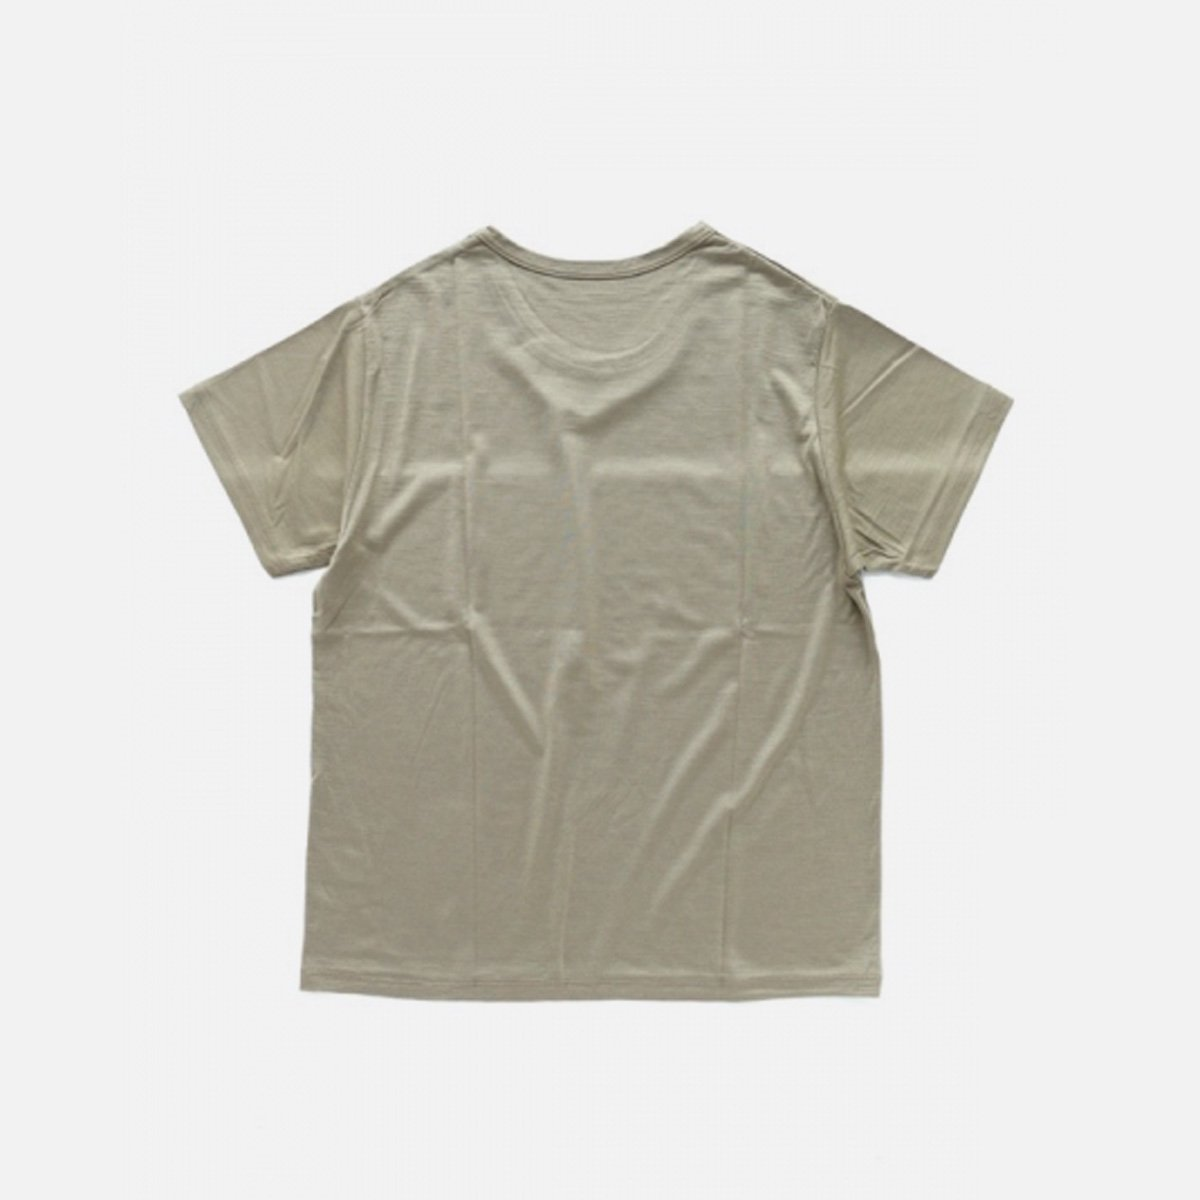 COLINA Super120s Washable Wool Tee  (Sepia)2